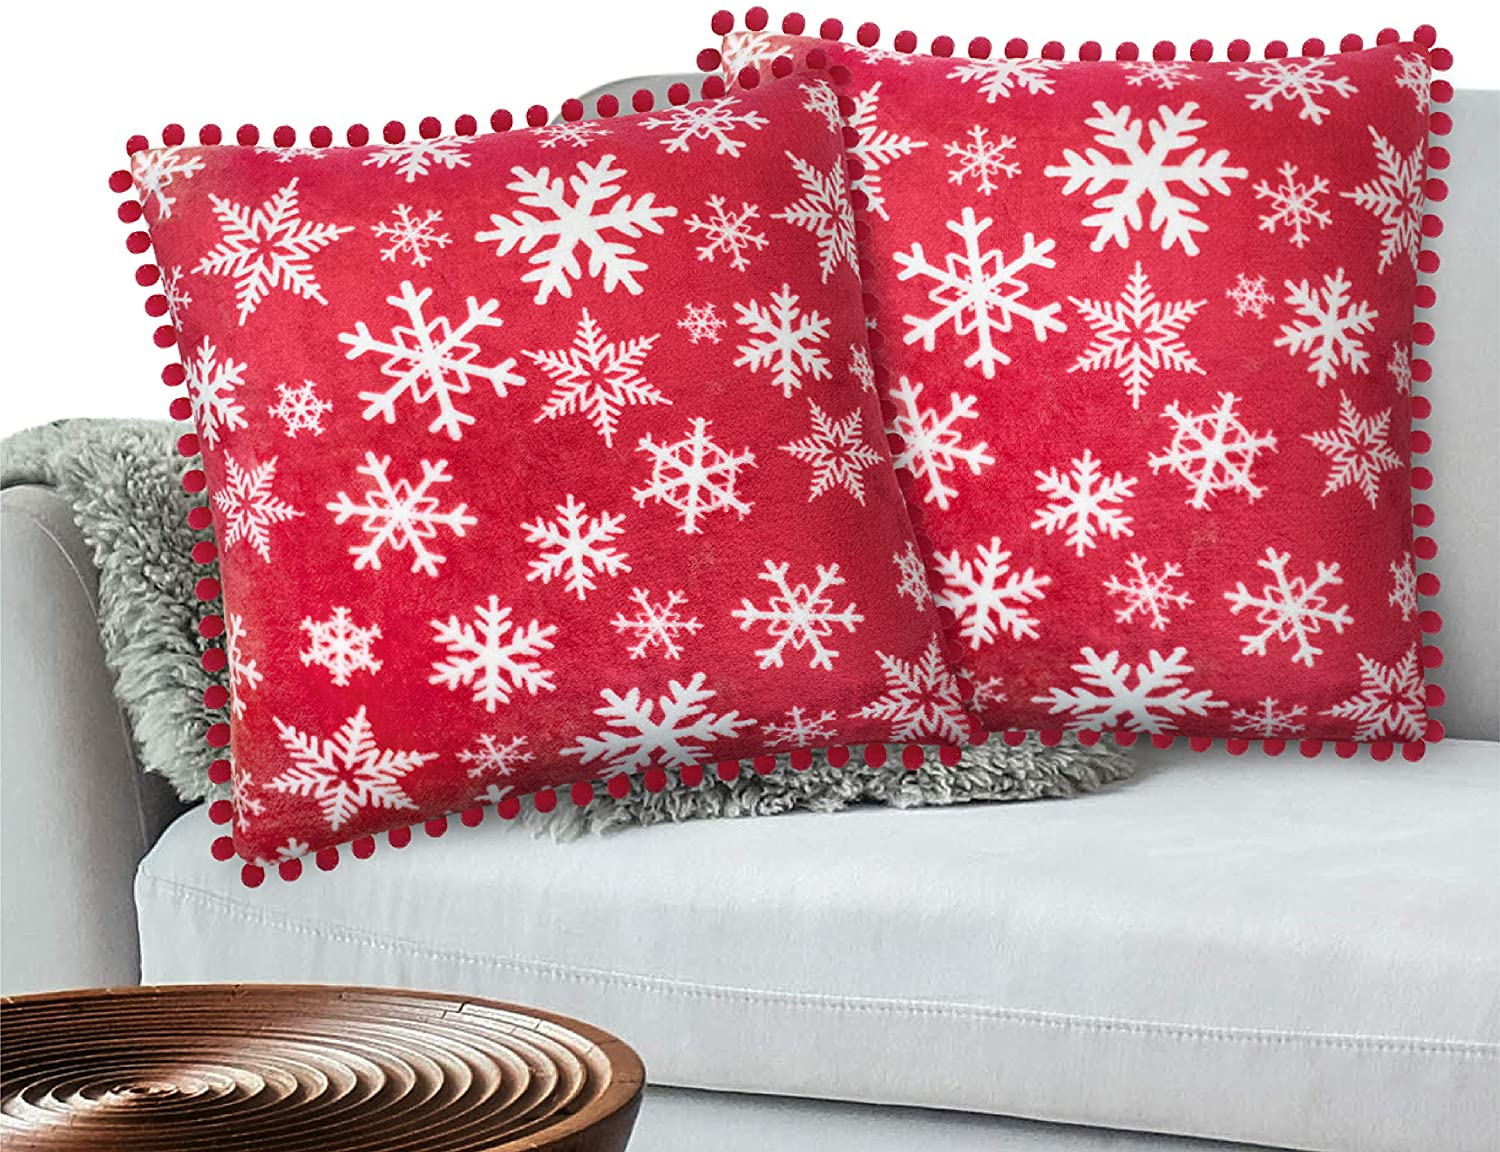 PAVILIA Holiday Fleece Throw Pillow Cover with Pom Pom Fringe, Set of 2 | Christmas Decorative Cushion Covers for Sofa Couch Bed Living Room 20 x 20 Inches, Snowflake Red